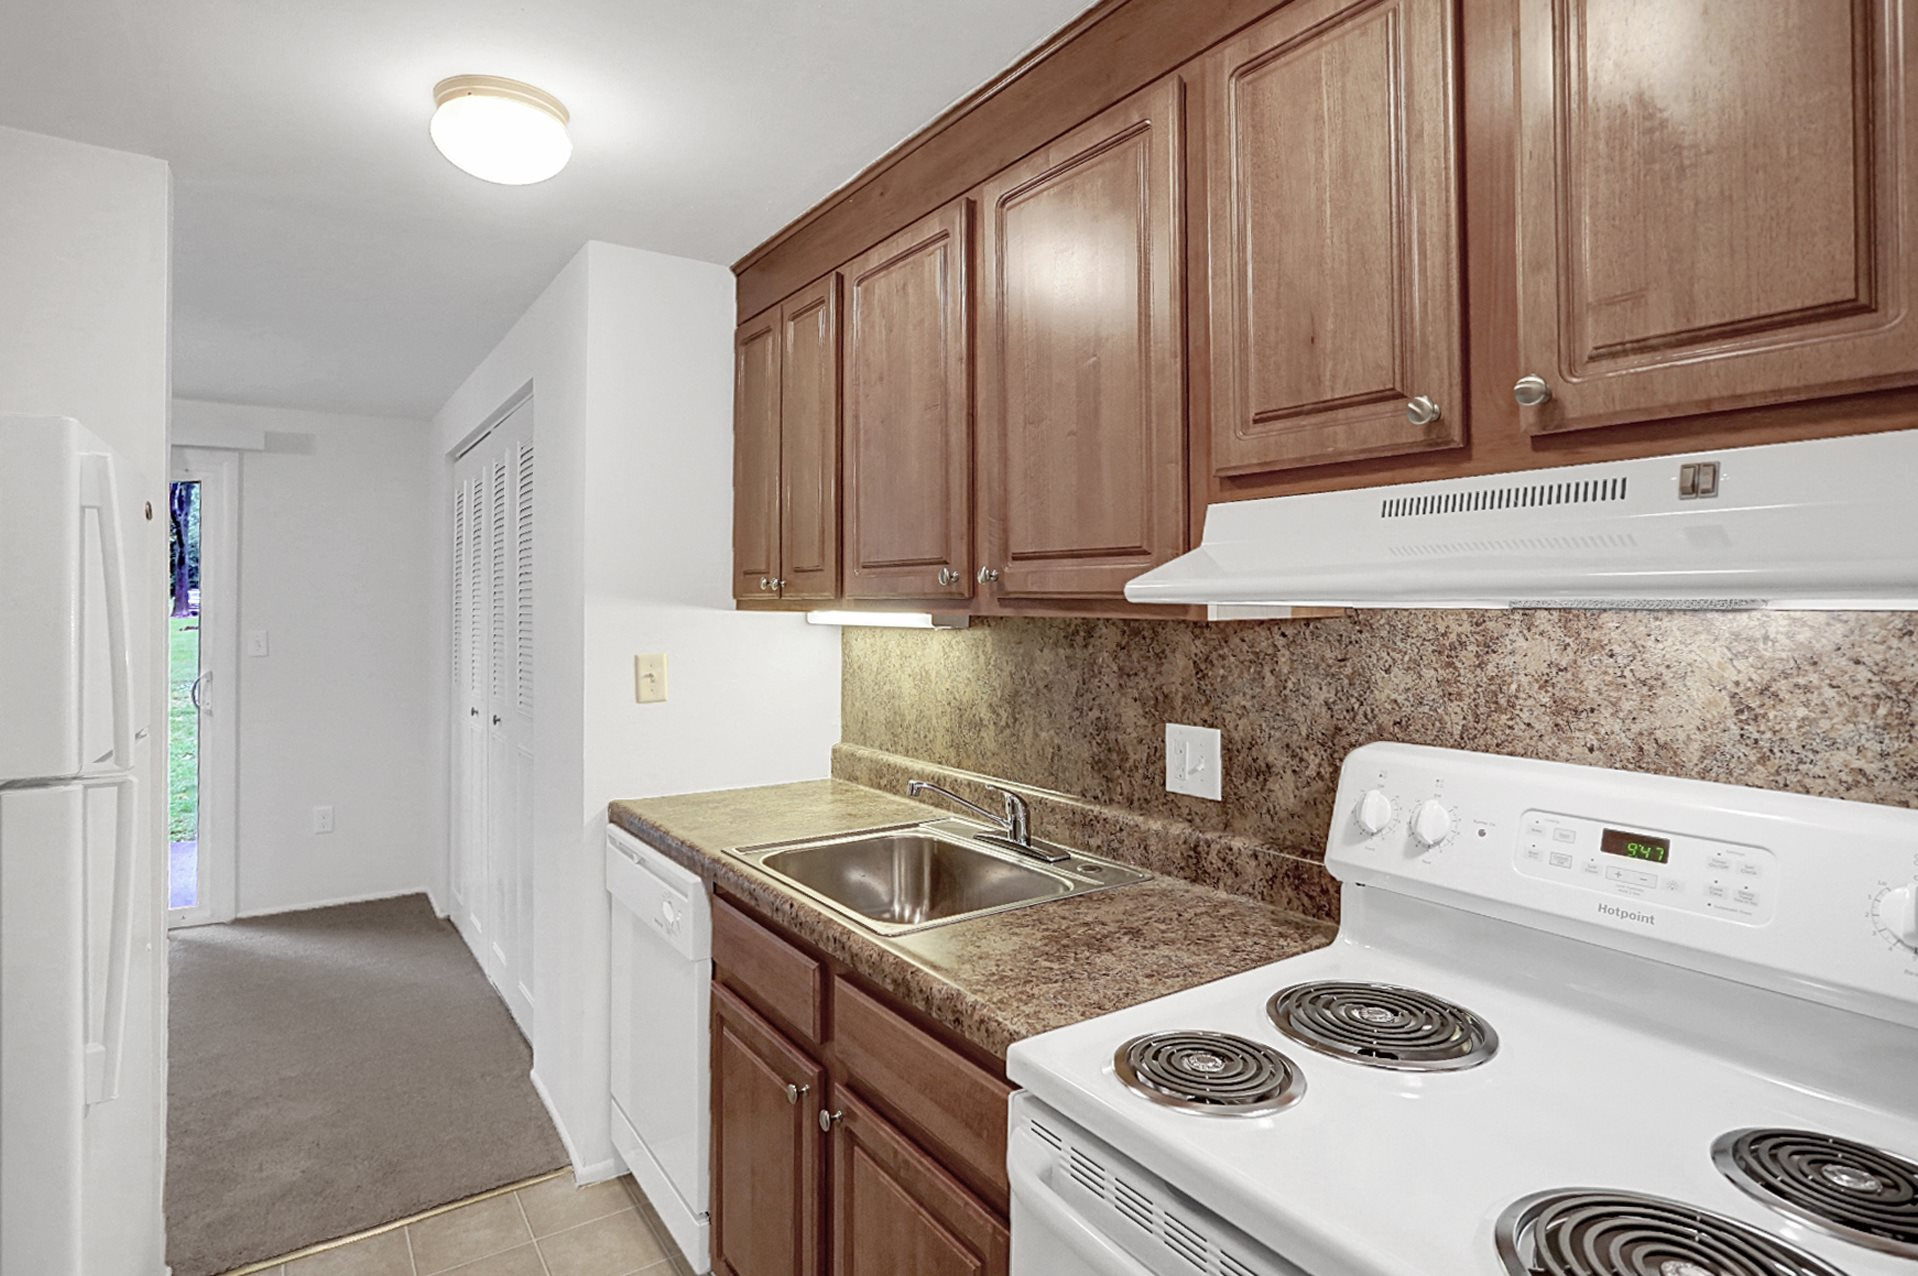 Apartments in Mechanicsburg, PA | Wesley Park Townhouses | Property Management, Inc.